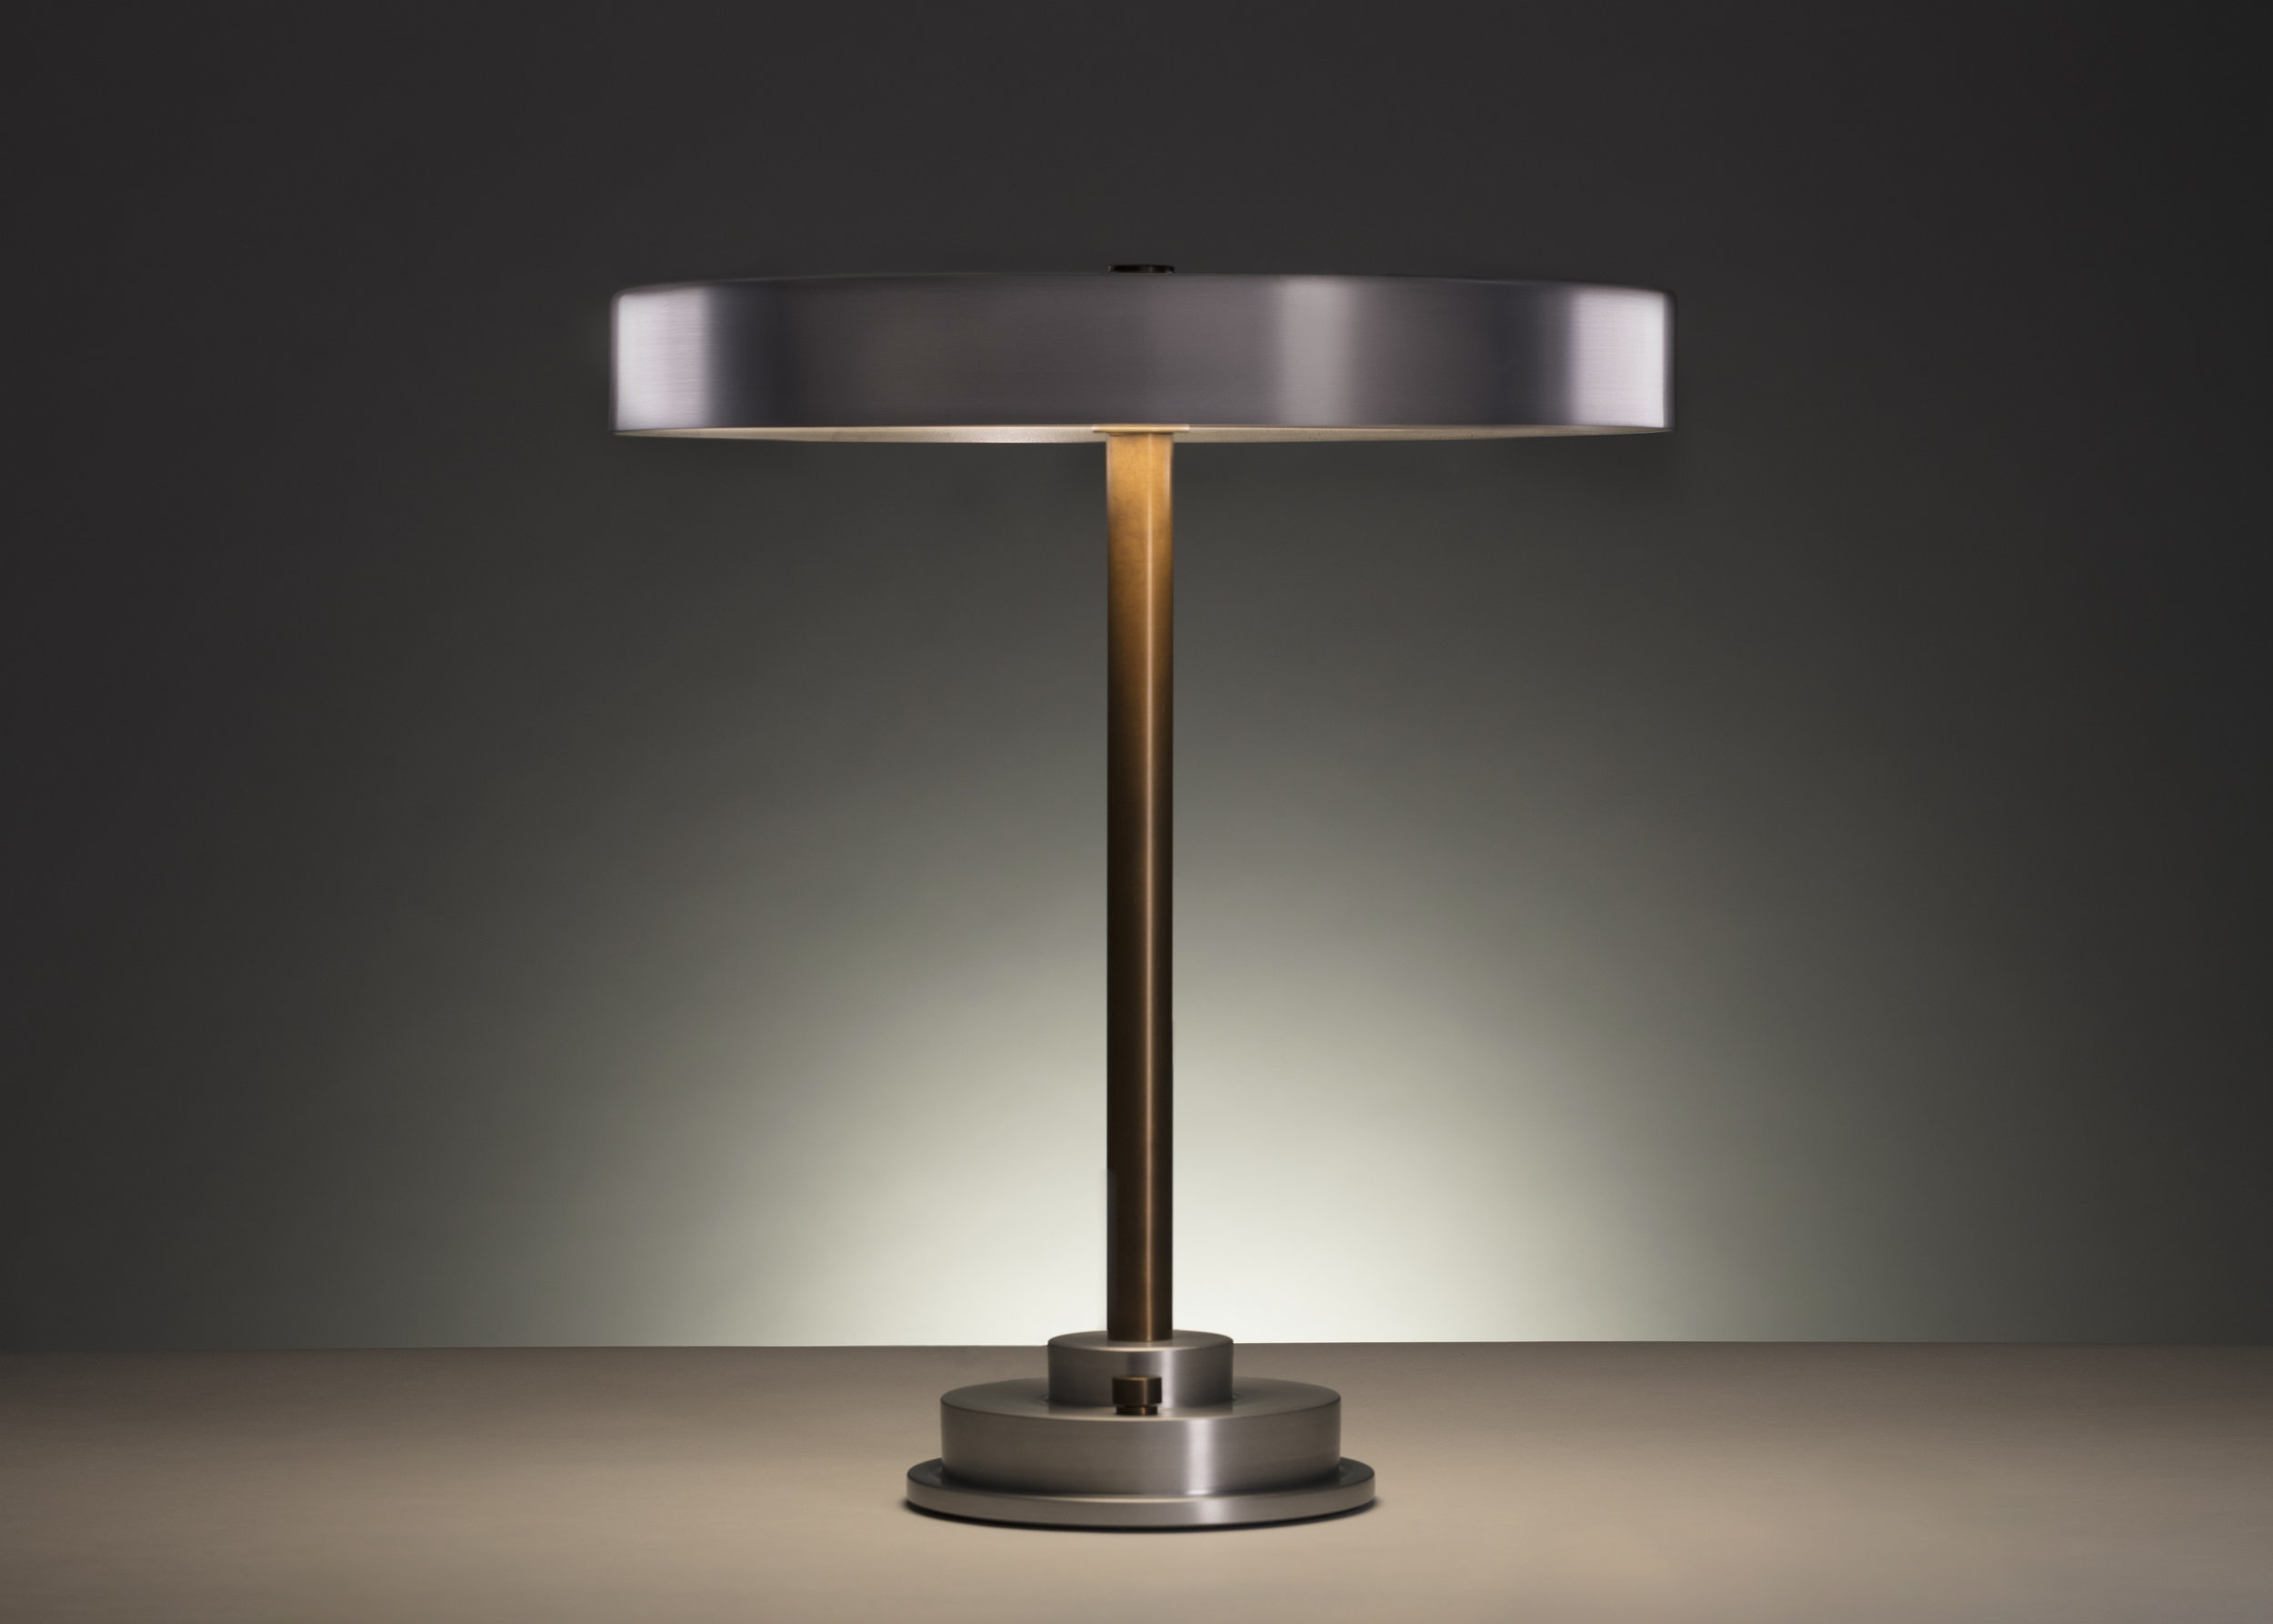 Disc Lamp Burnished Aluminum by APD Argosy Product Division